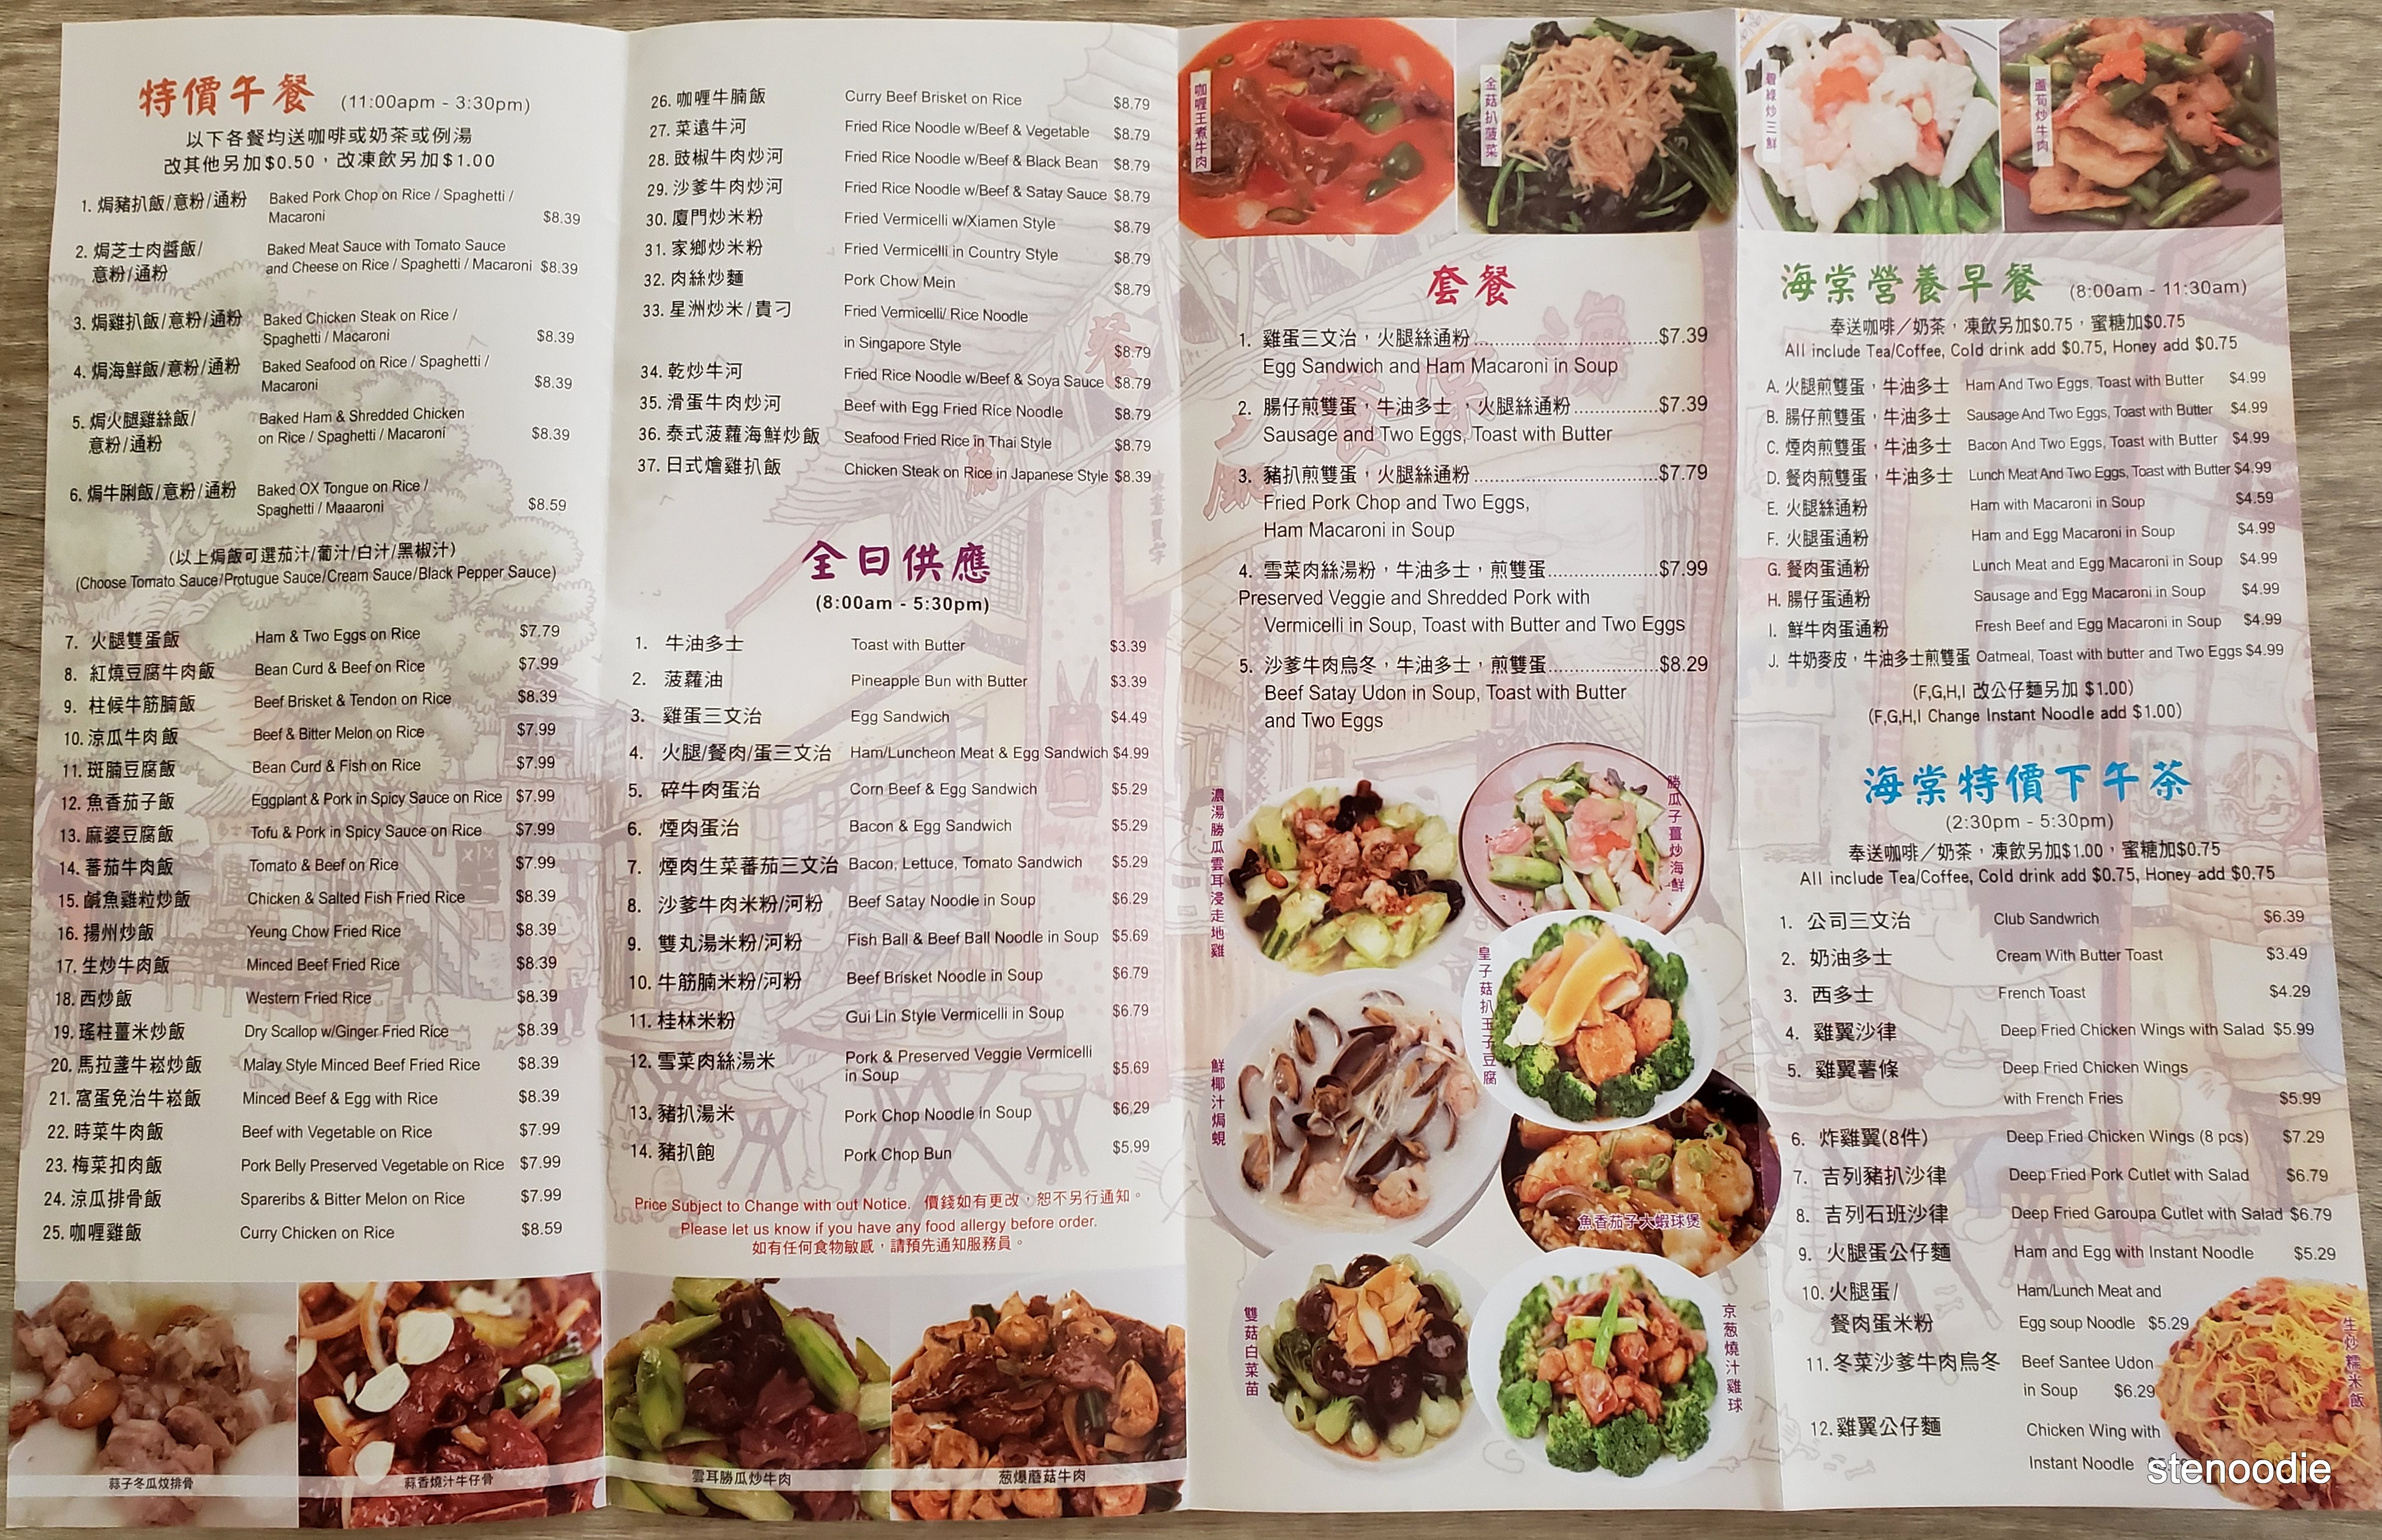 Hai Tang Cafe & Takeout menu and prices